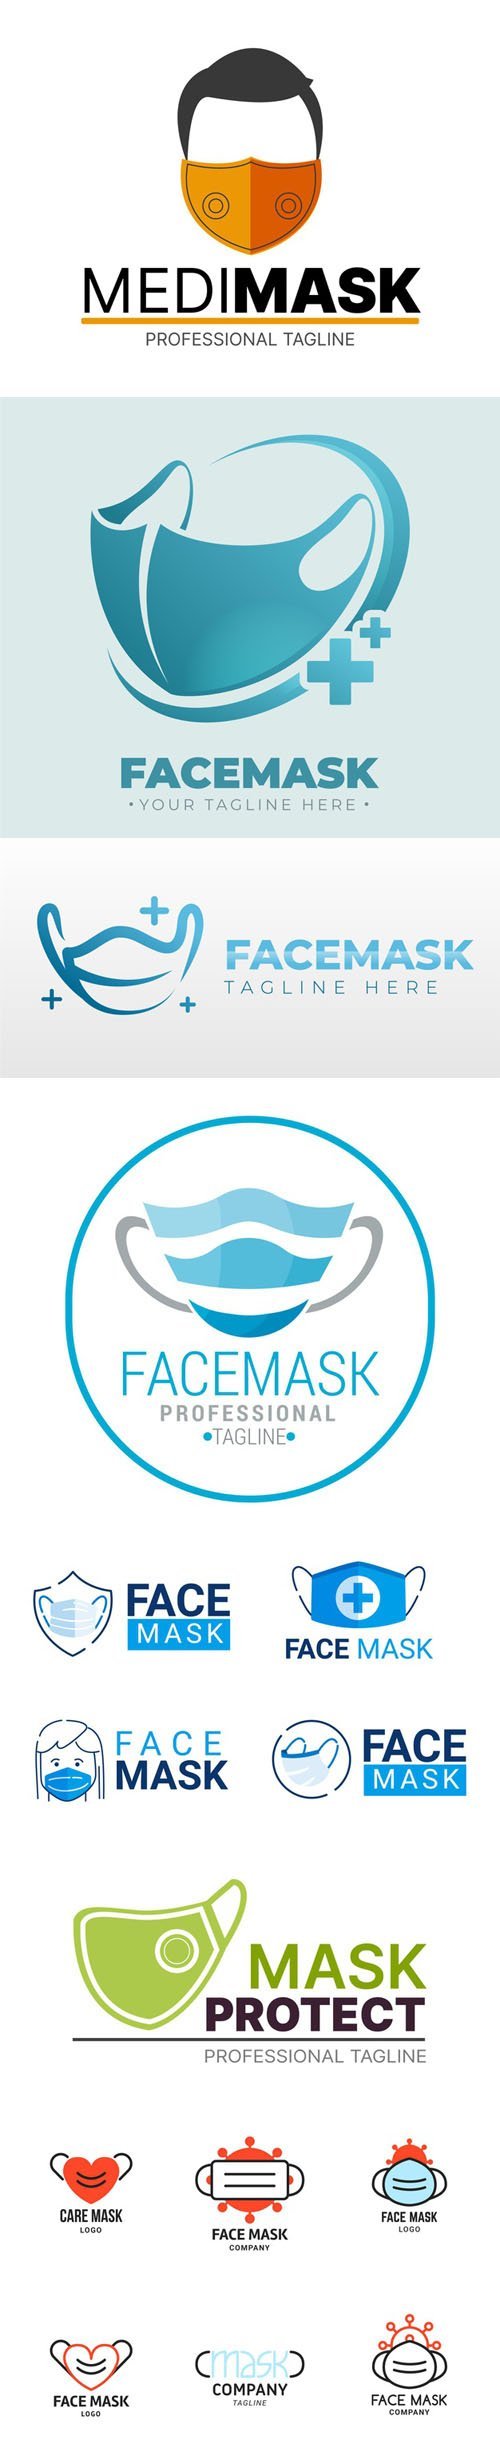 15 Face Mask Logos Templates in Vector